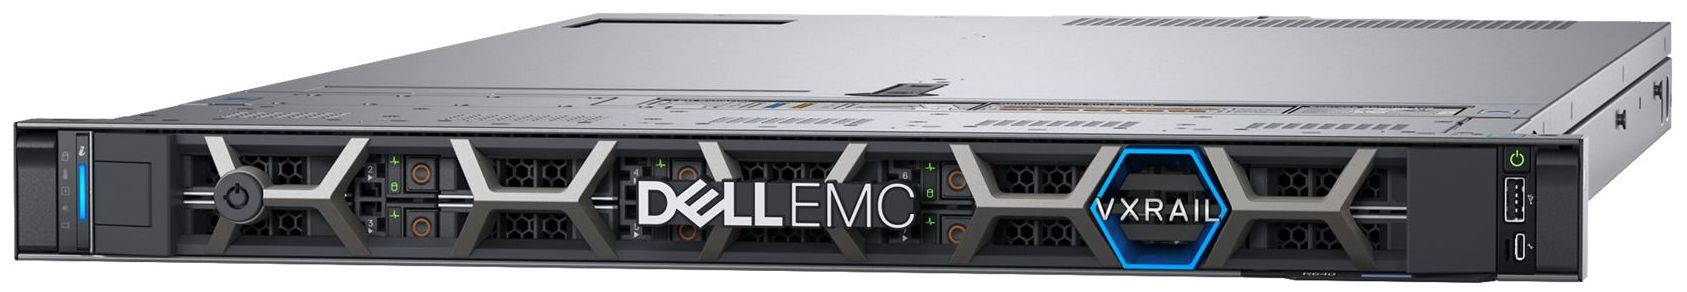 Dell EMC VxRail E-Series